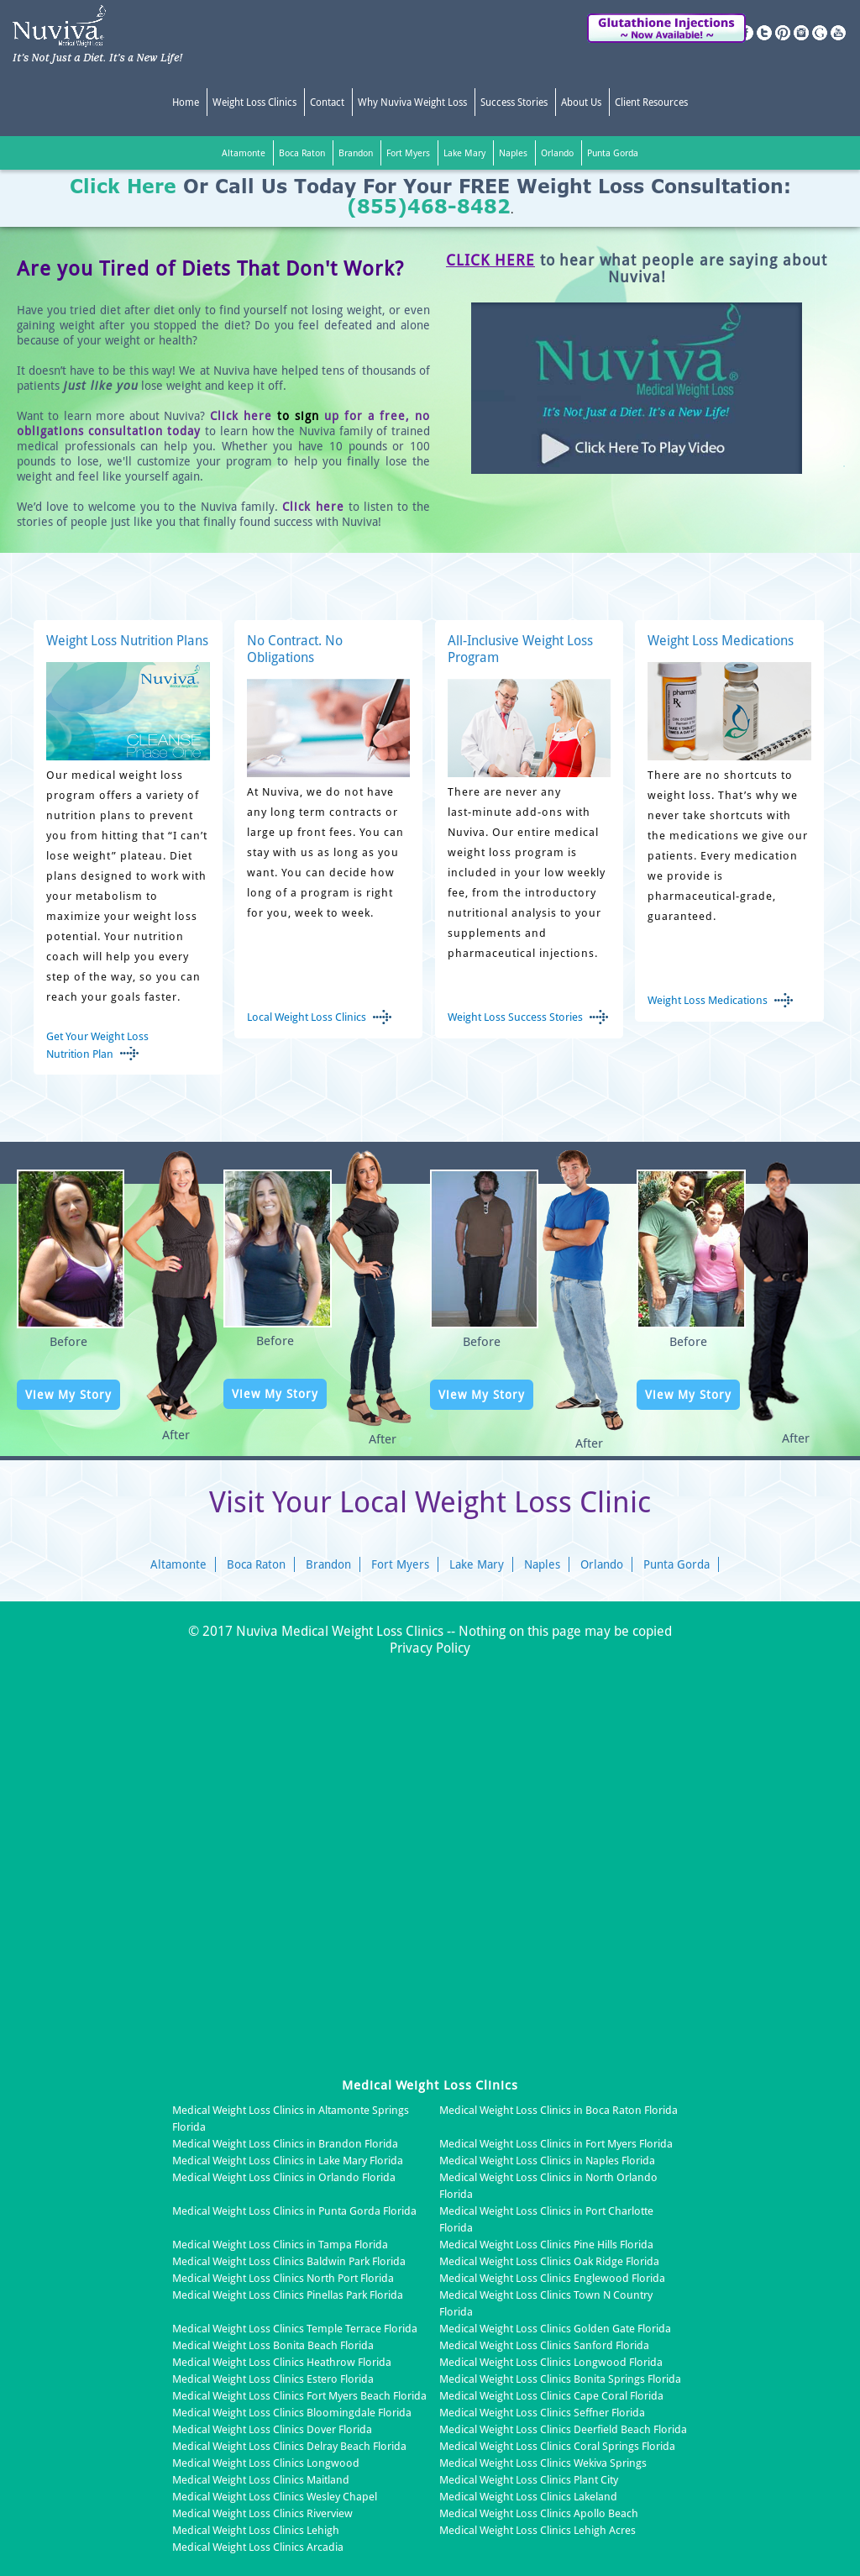 Nuviva medical weight loss clinic of boca raton